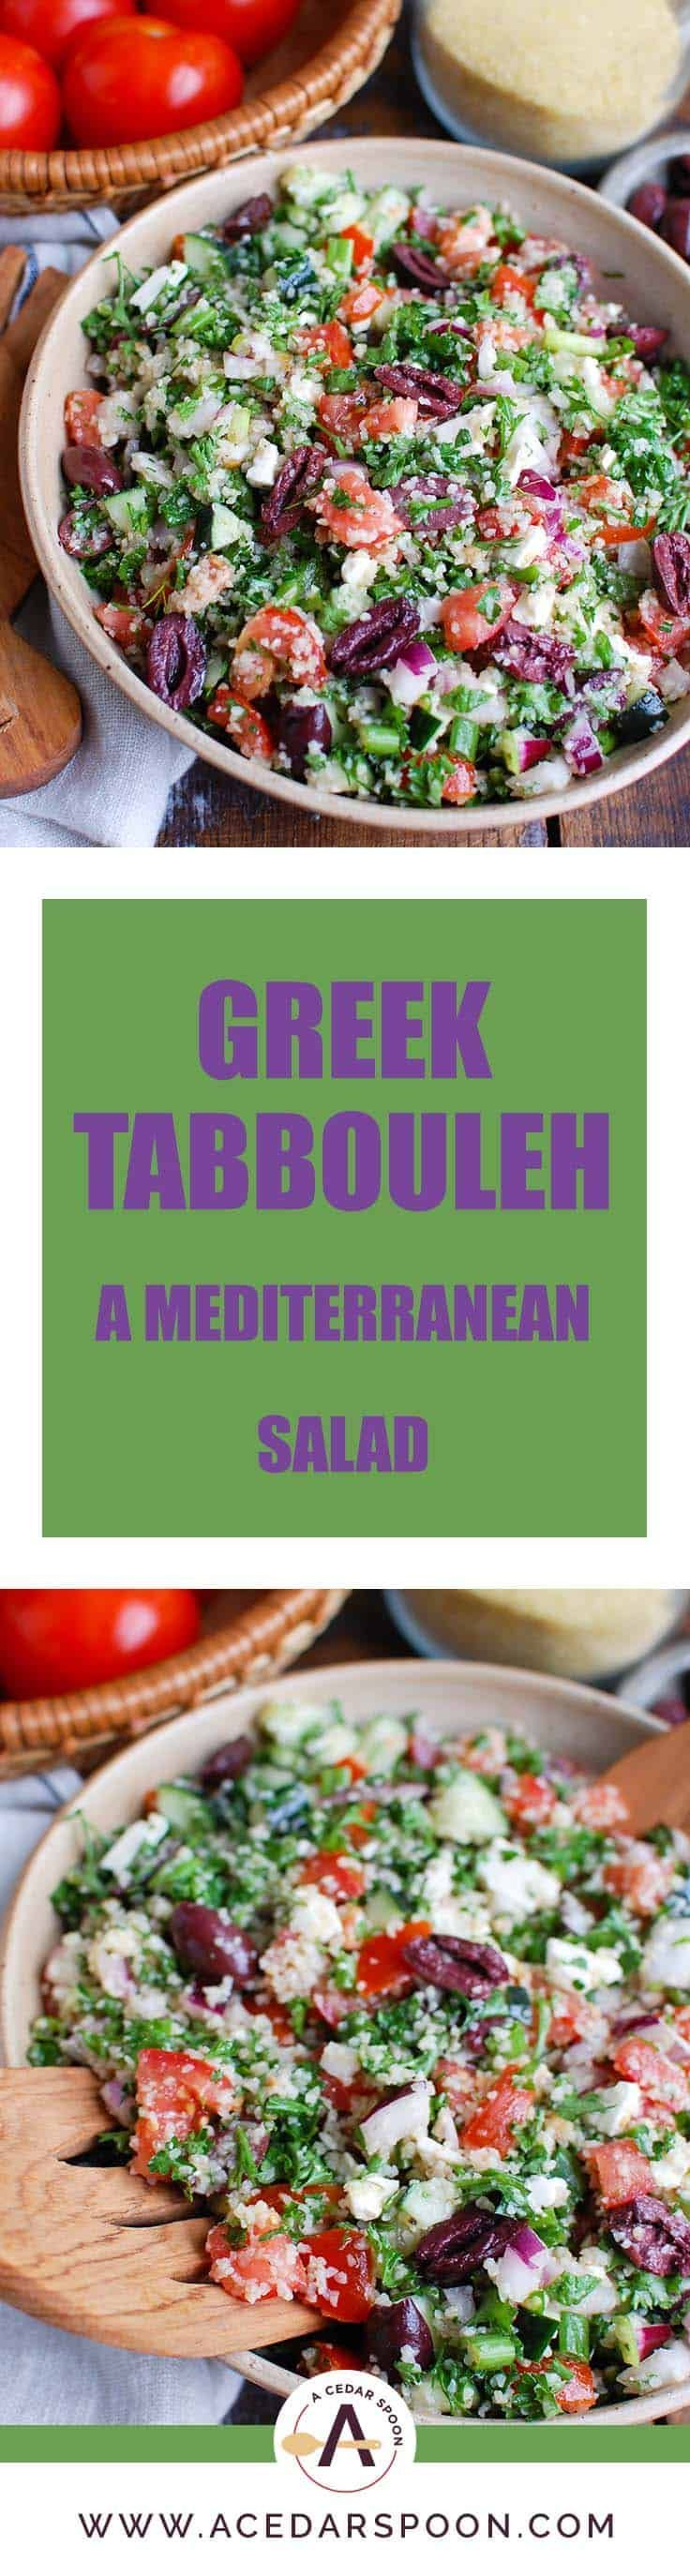 Greek Tabbouleh is a twist to classic tabbouleh using Greek ingredients. Kalamata olives, feta cheese, red onion and cucumber are paired with tomatoes, parsley, green onion and fresh herbs and topped with a light lemony dressing for a healthy salad. // A Cedar Spoon #tabbouleh #salad #cleaneating #wholefoods #vegetarian #feta #fetacheese #cheese #vegetables #olives #kalamataolives #roastedredpeppers #lunch #sidedish #bulgur #bulgurwheat #mediterraneandiet #mediterraneanfood #middleeasterfood